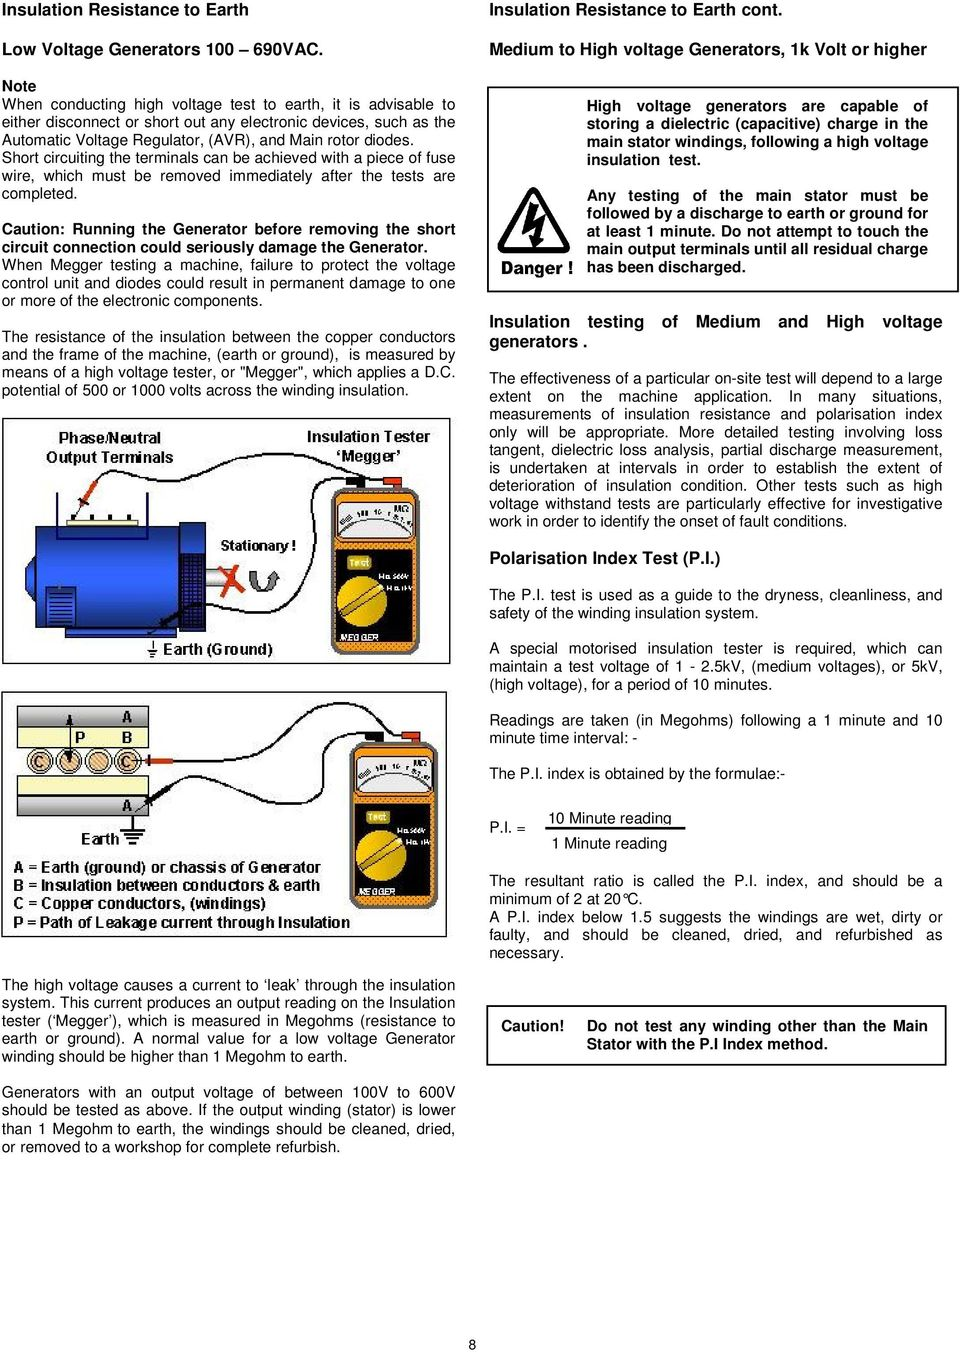 Fault Finding Manual For Stamford Ac Generators Pdf Shortcircuit Generatorshortcircuit Generatorsec Electric Short Circuiting The Terminals Can Be Achieved With A Piece Of Fuse Wire Which Must